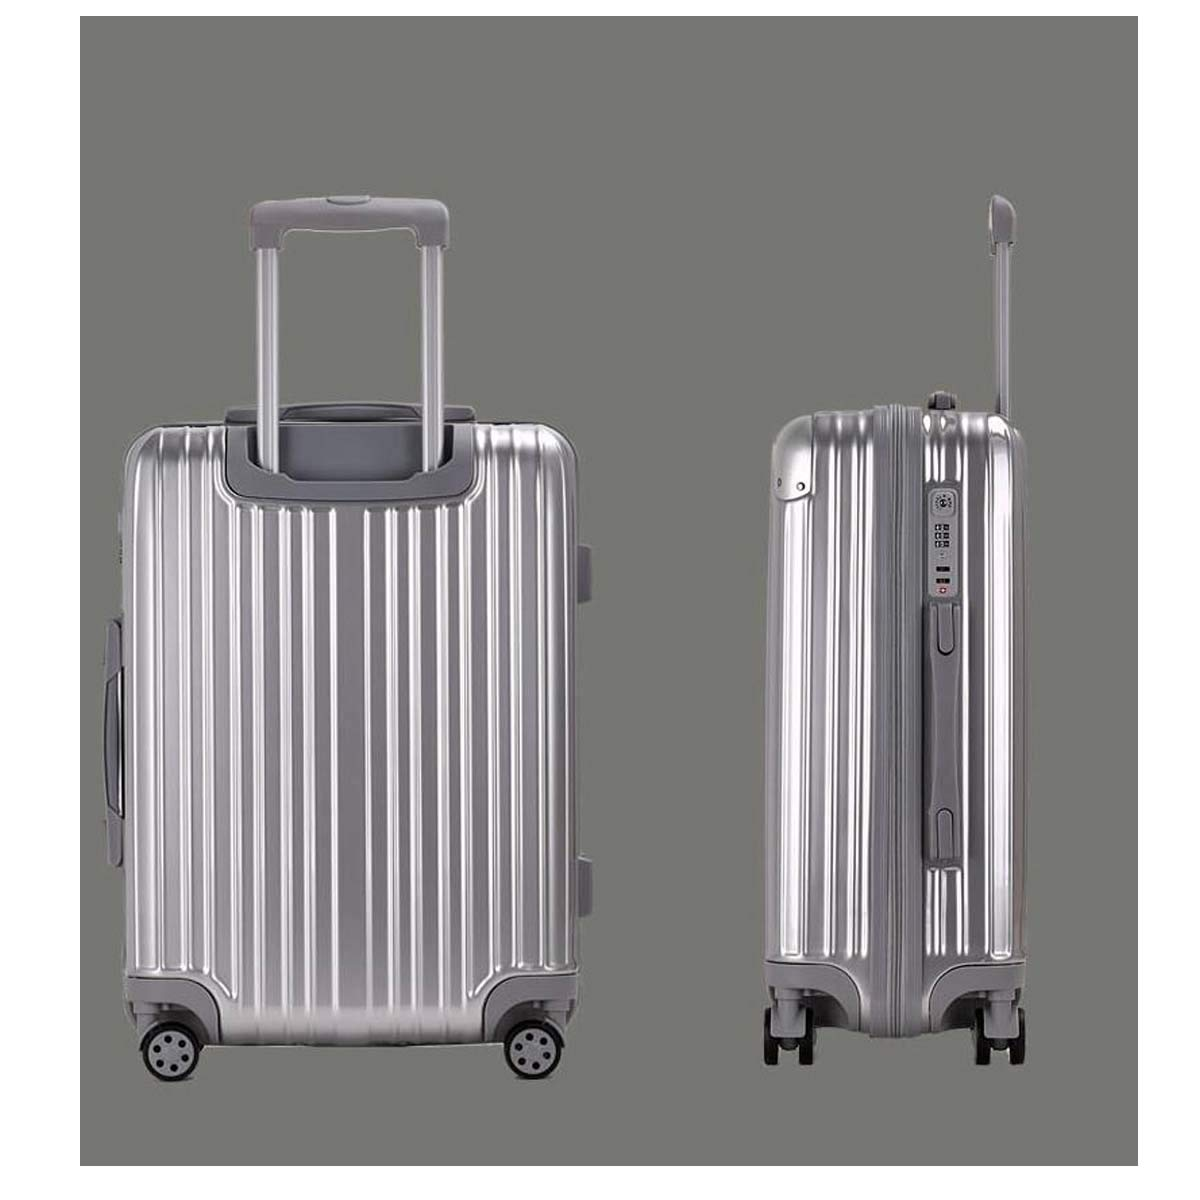 Best Gift Carrying Luggage 20 inches Color : Silver Trolley case Travel Organizer Bahaowenjuguan Hard Rotating Luggage Black